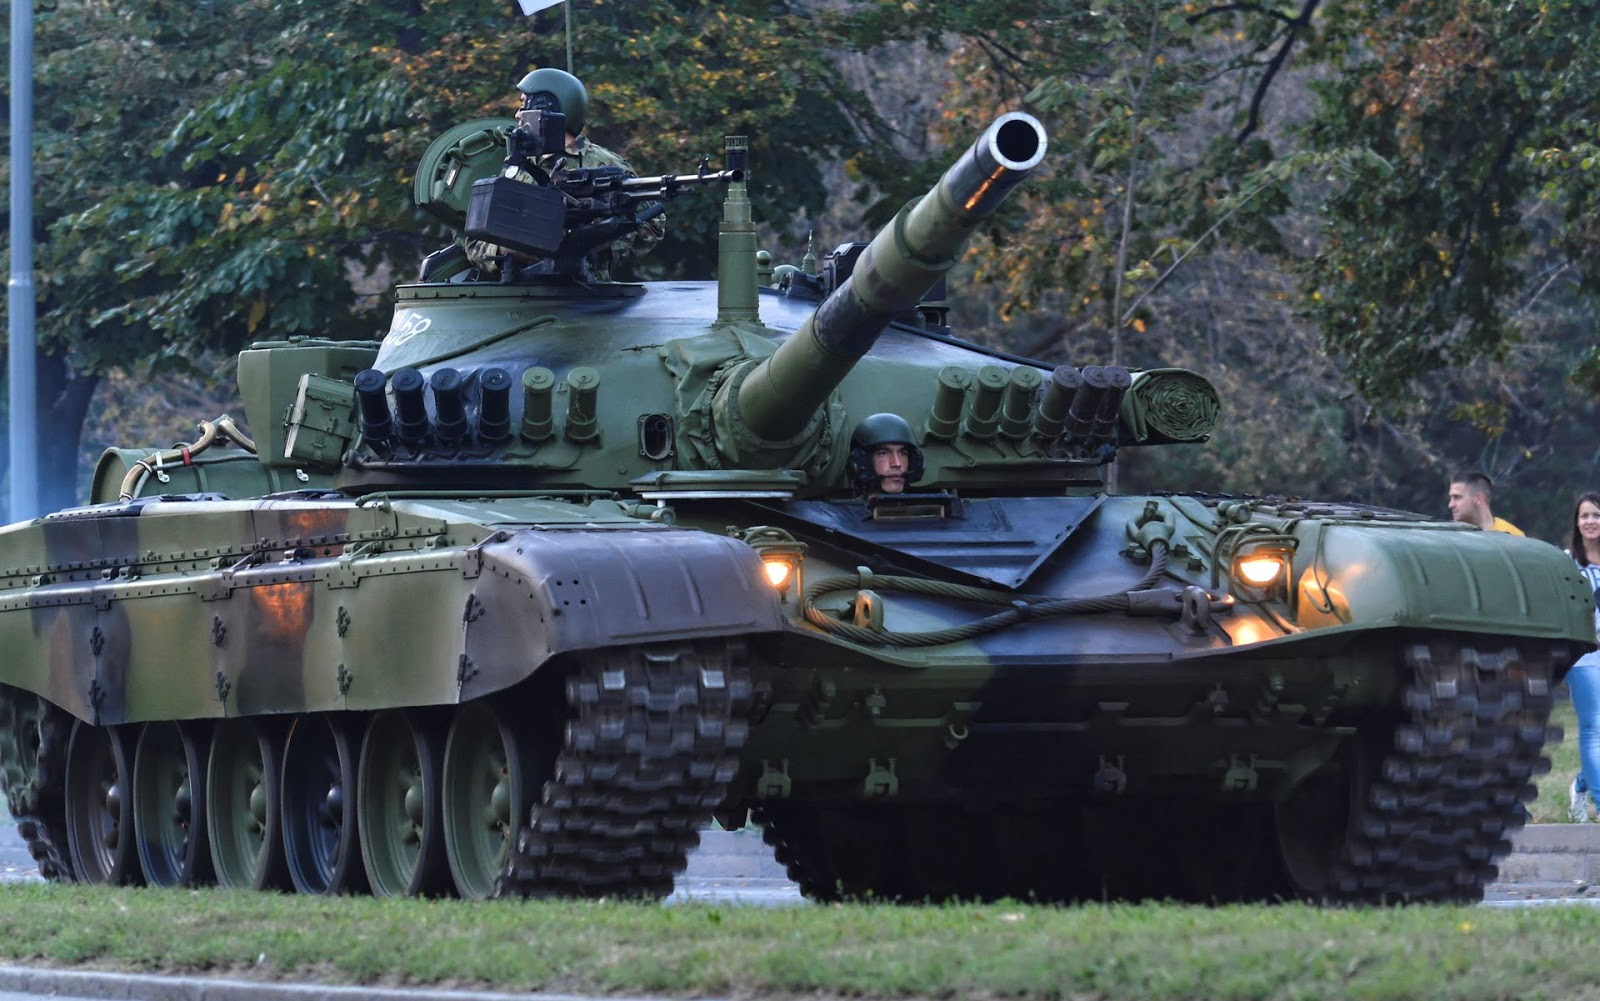 The M-84 is the name of the main battle tank of the former JNA, which was produced under license from the Soviet tank T-72 in the former Yugoslavia.